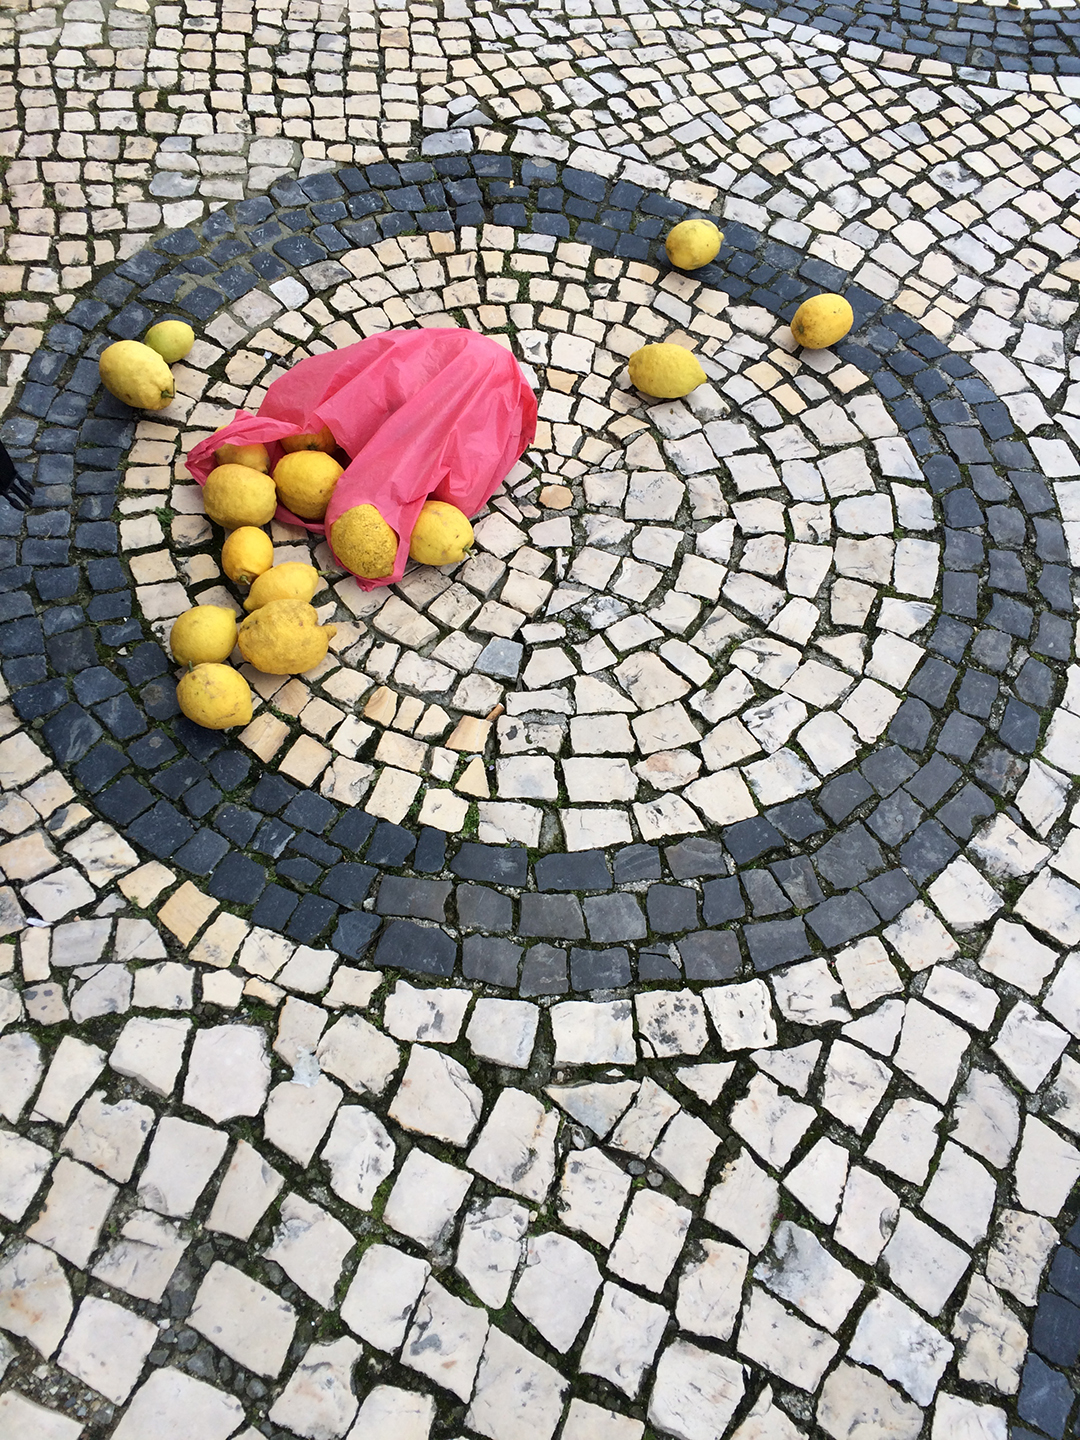 Untitled (dropped lemons)